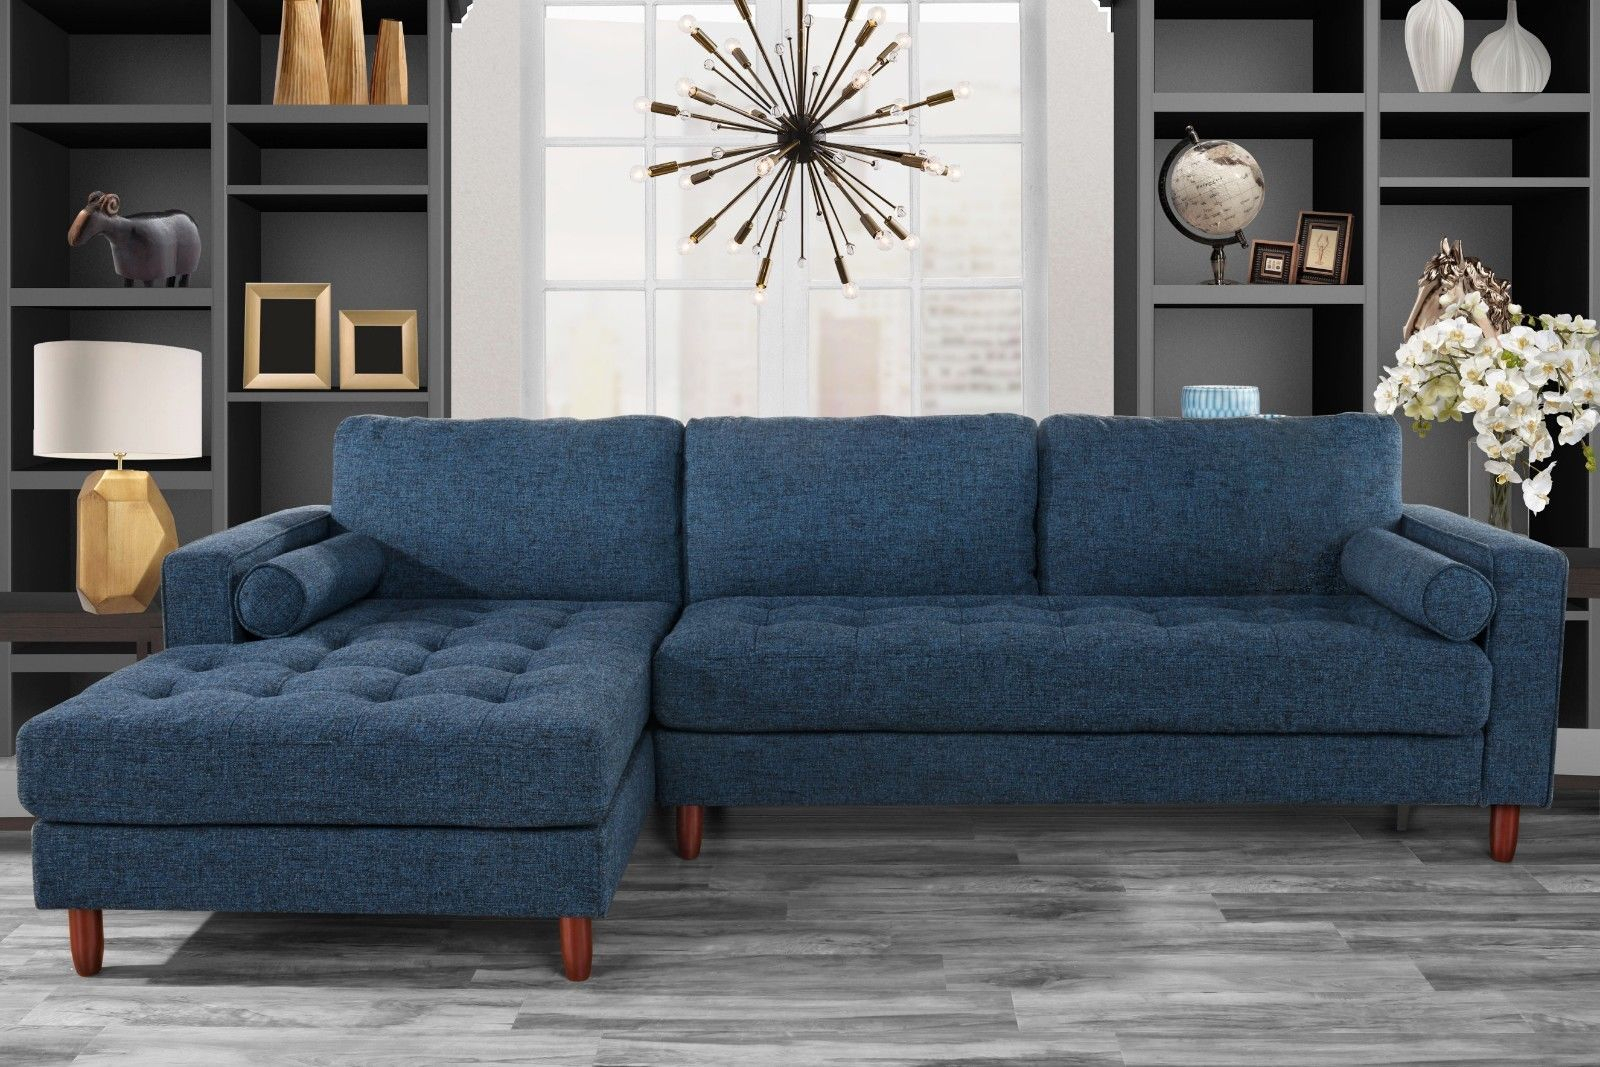 Mid Century Tufted Fabric Sectional Sofa, L Shape Couch With Dulce Mid Century Chaise Sofas Dark Blue (View 15 of 15)